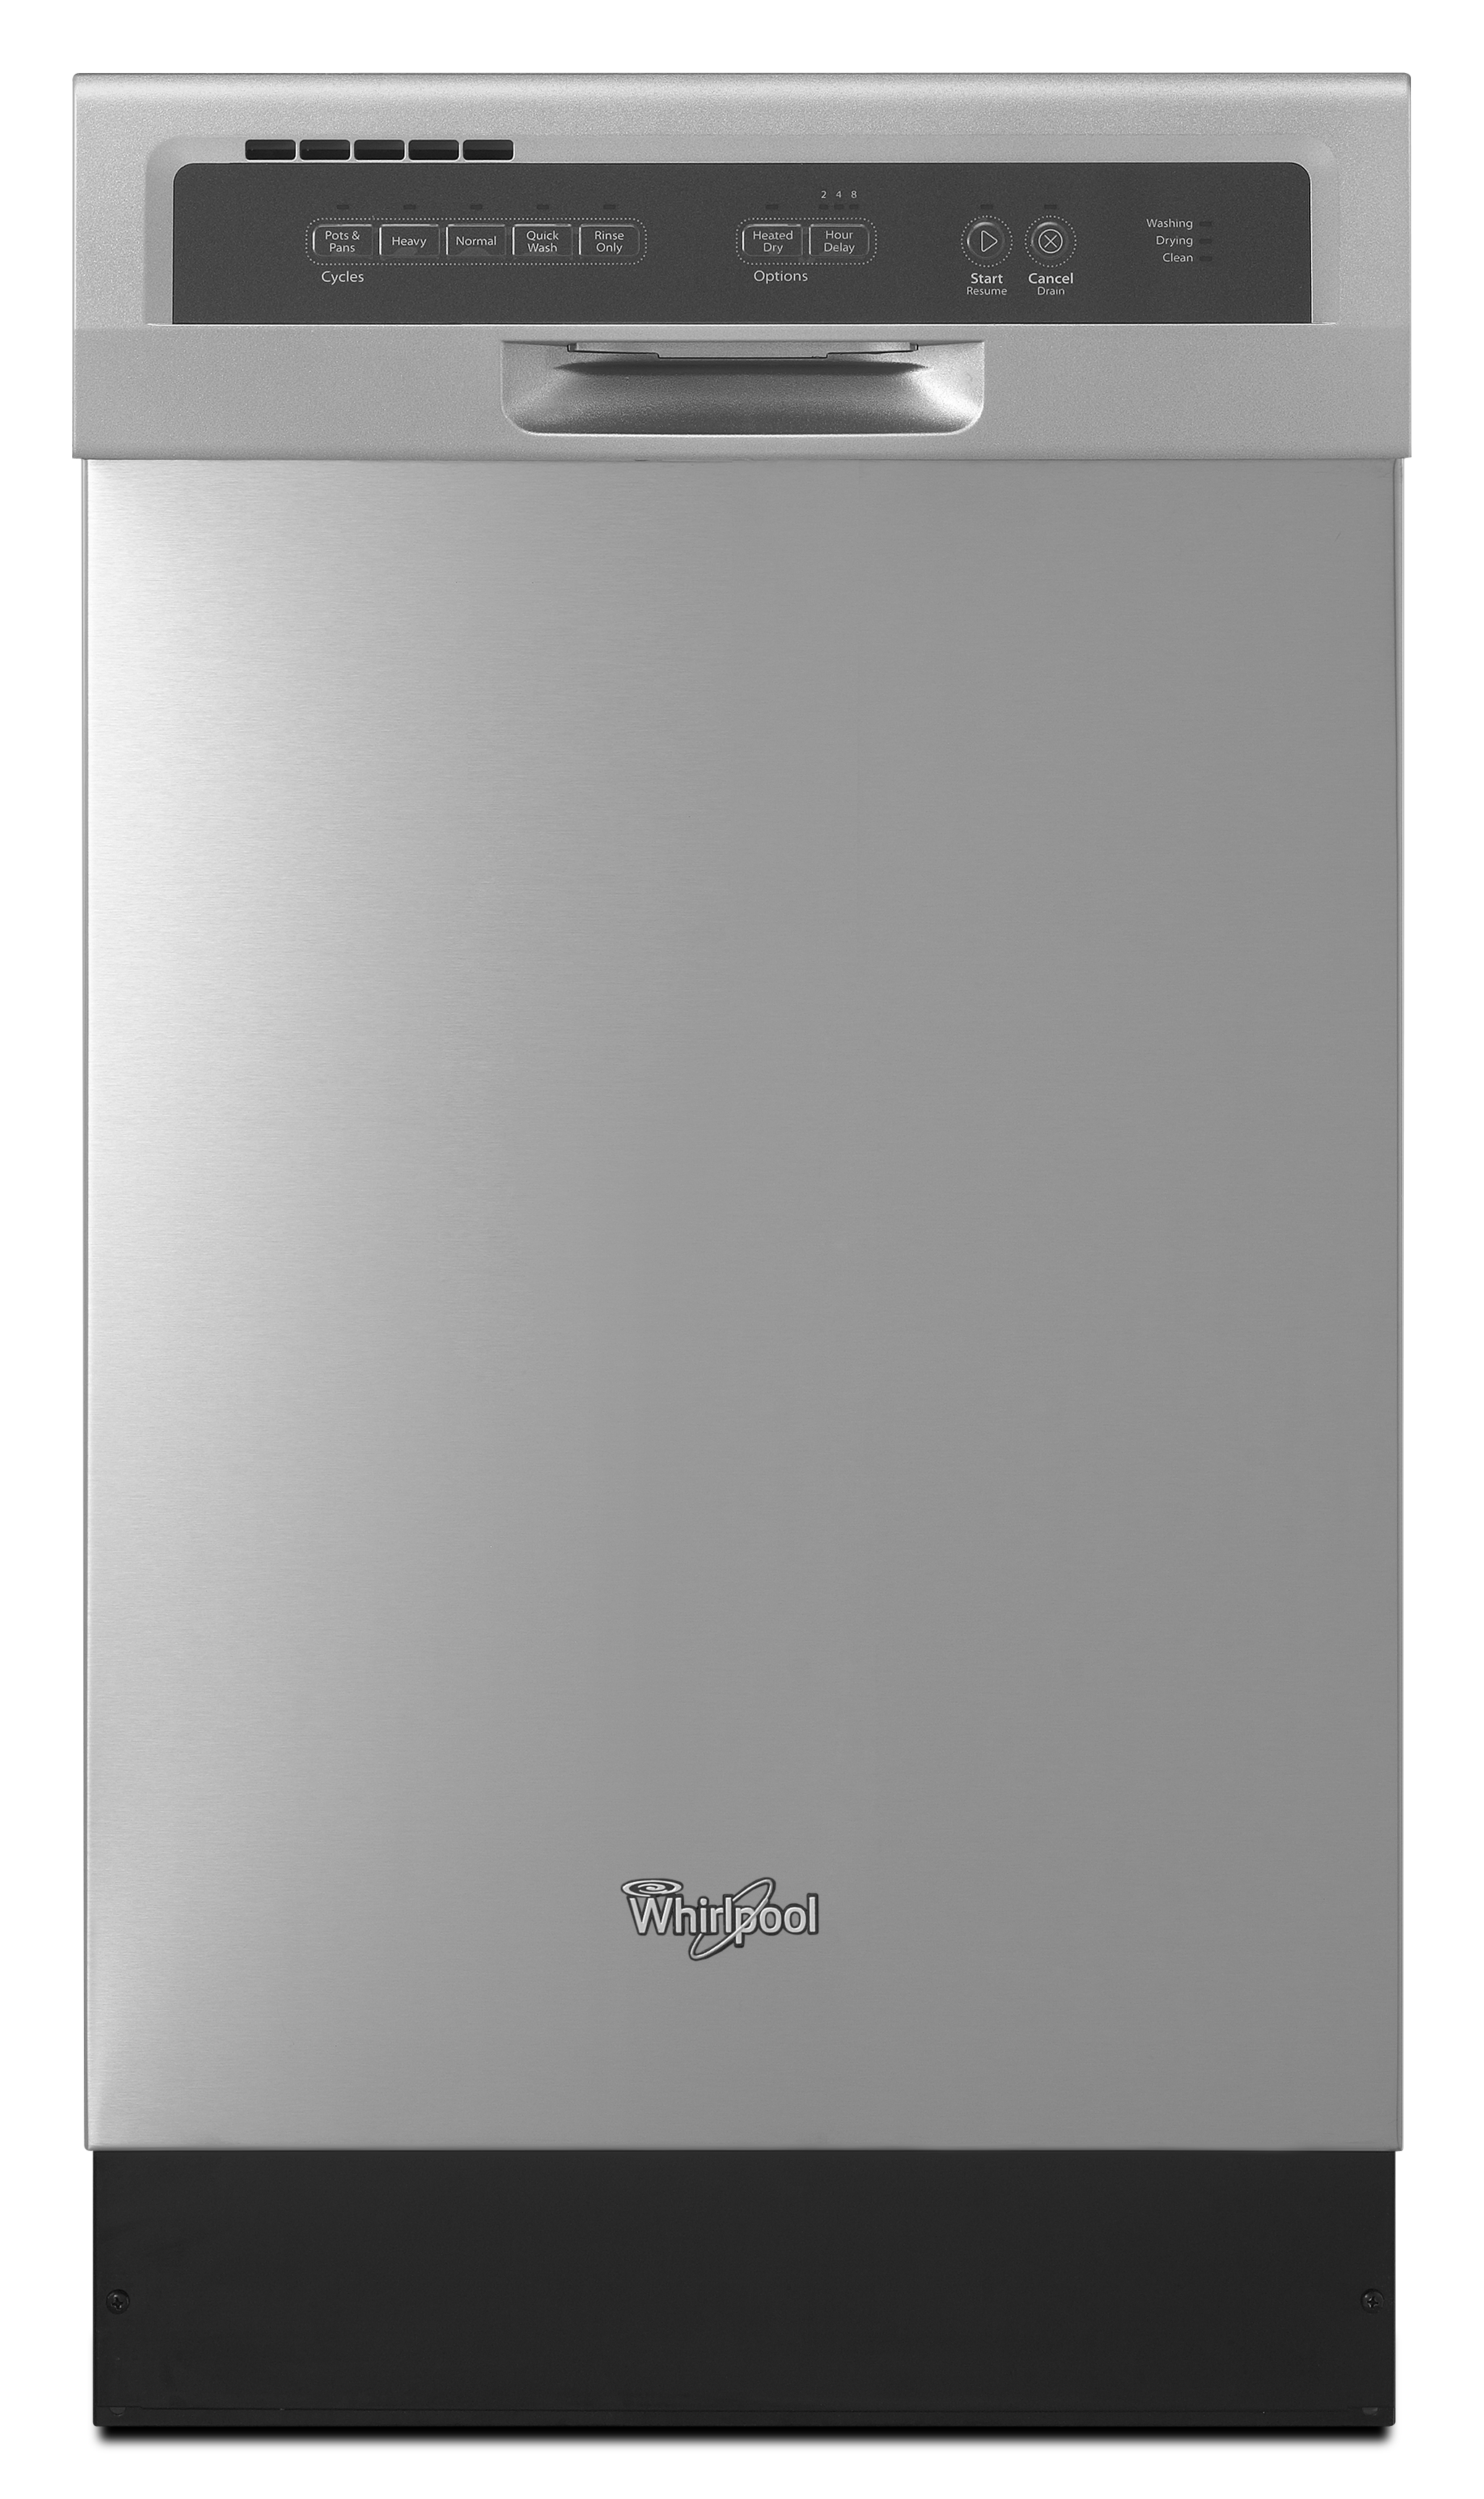 Whirlpool 57 Decibel Built In Dishwasher Monochromatic Stainless